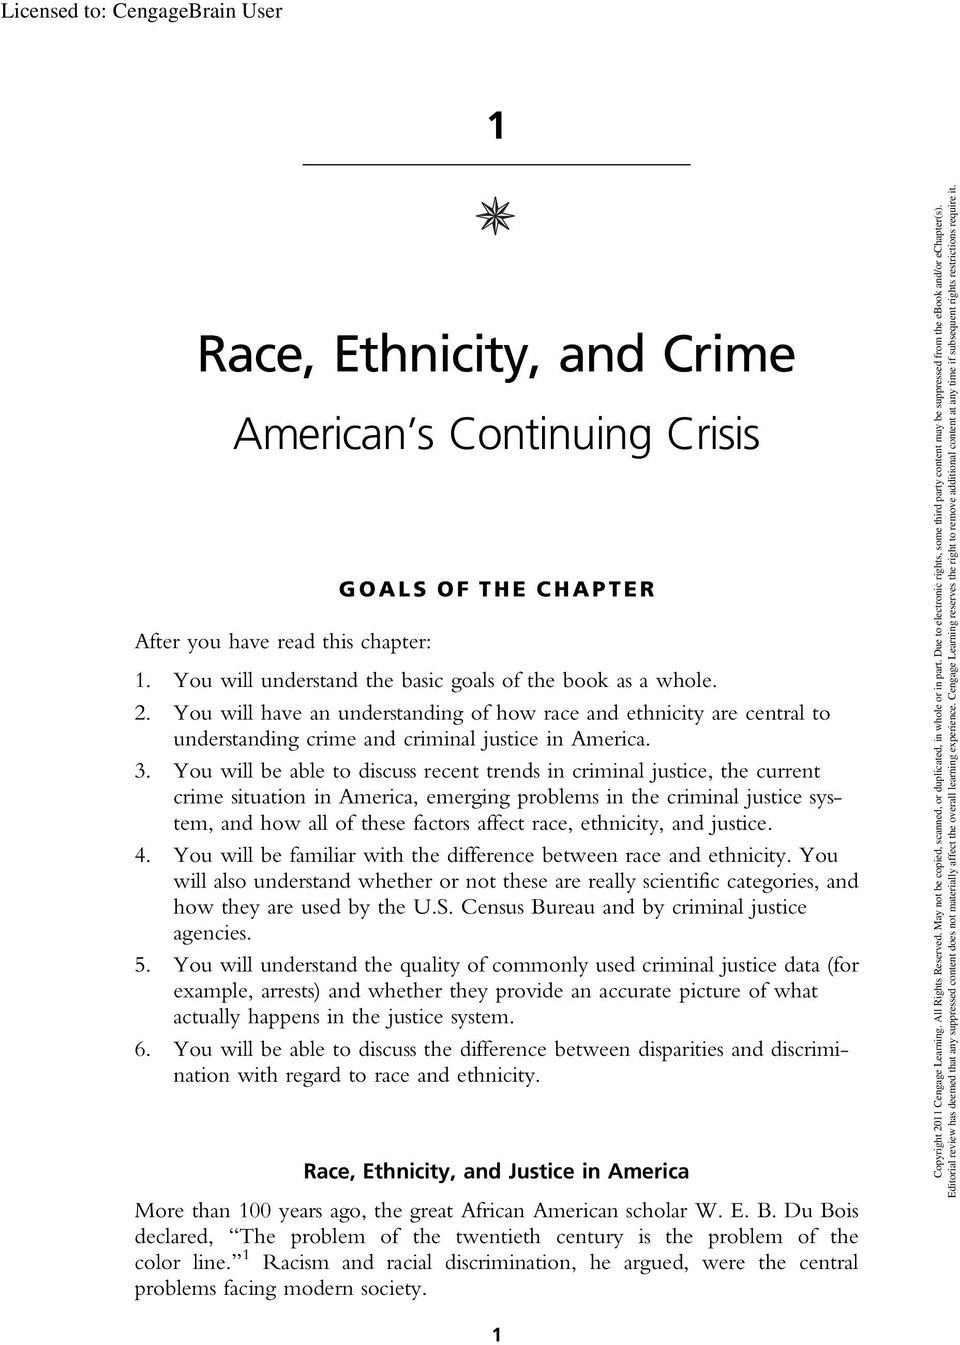 research paper on racism in america Essay, research paper: racism in america american history free american history research papers were donated by our members/visitors and are presented free of charge for informational use only.